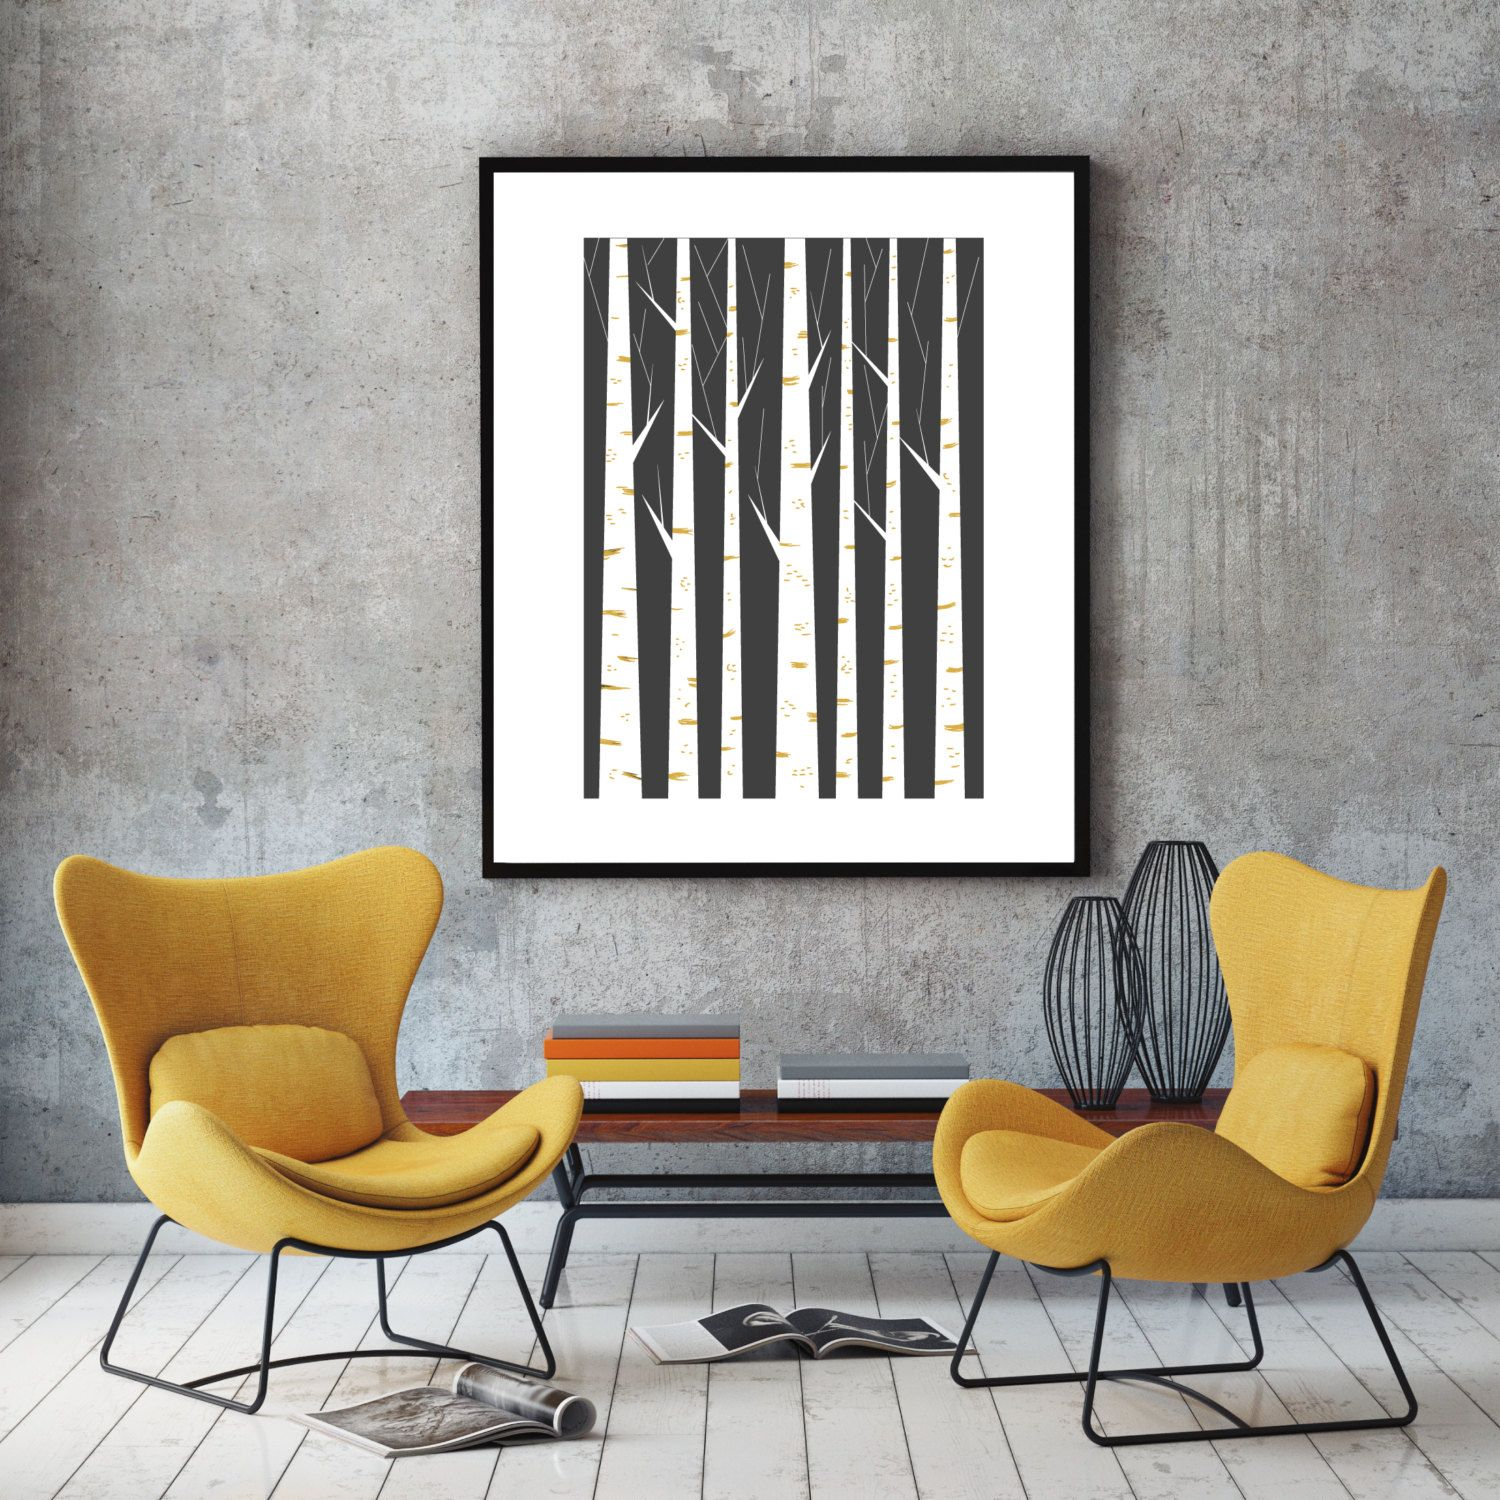 Birch Print Birch Art Minimalist Home Decor Scandinavian